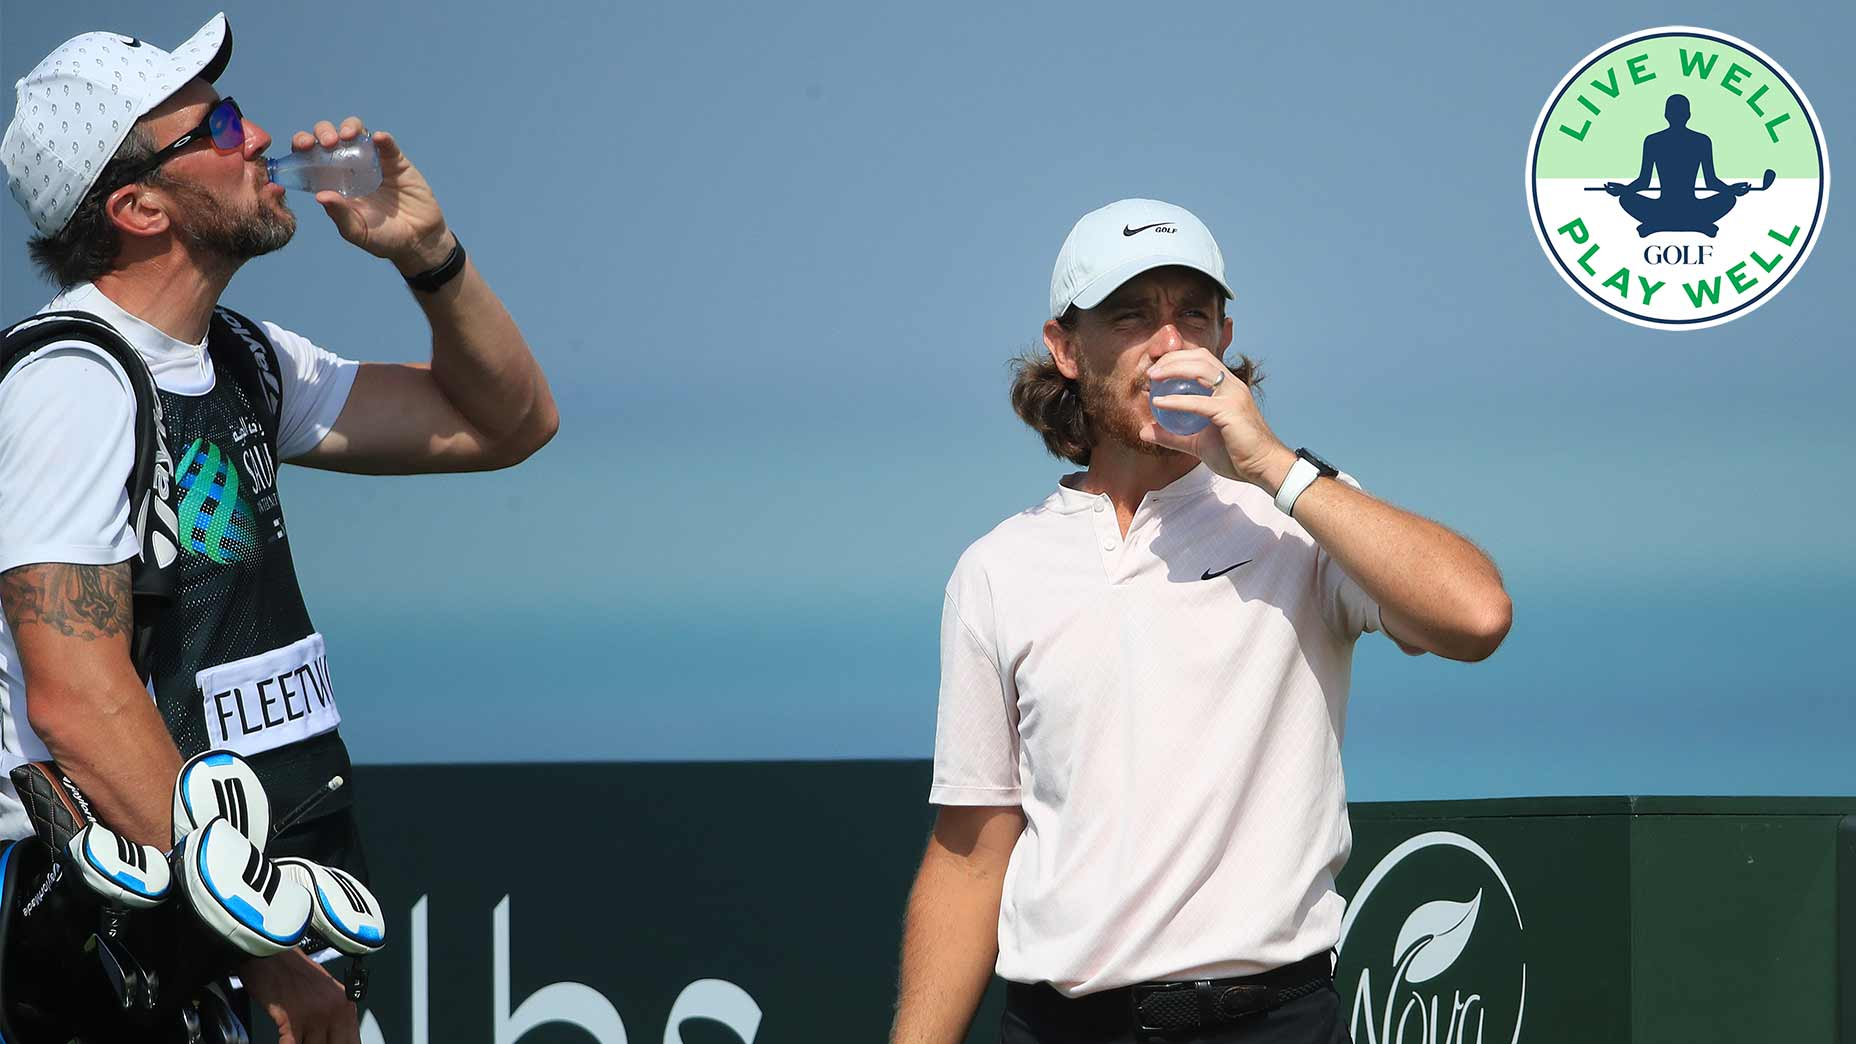 Soda isn't the best thing you could drink on the course.